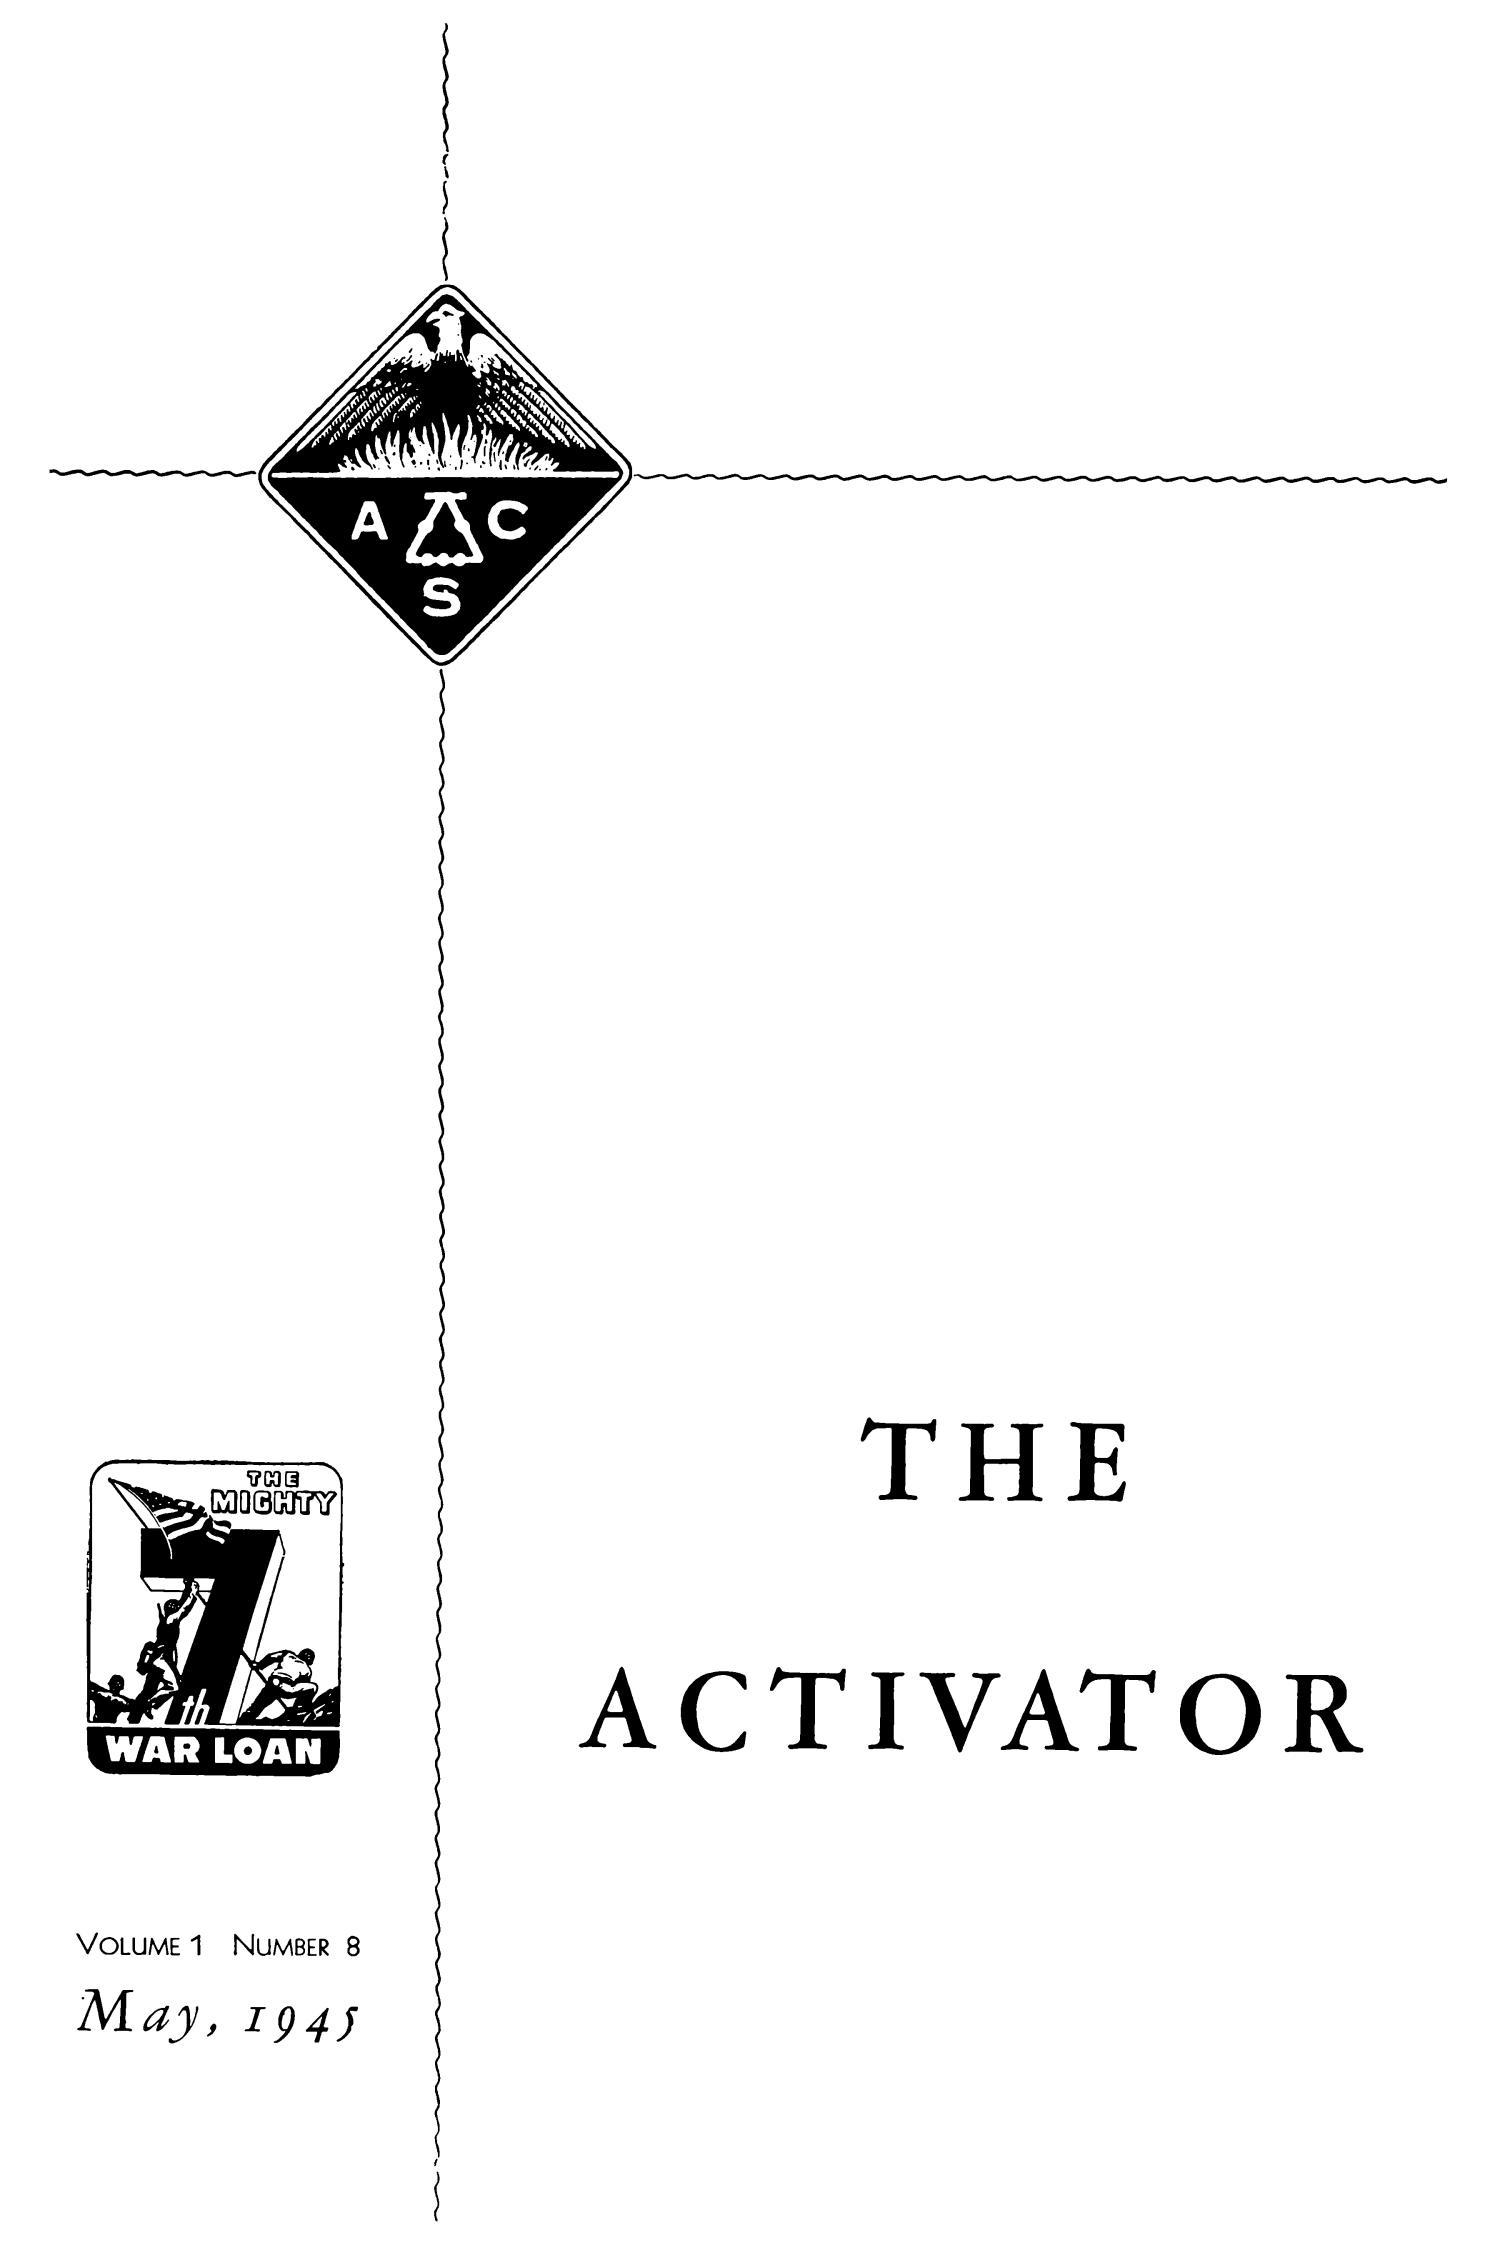 The Activator, Volume 1, Number 8, May 1945                                                                                                      161